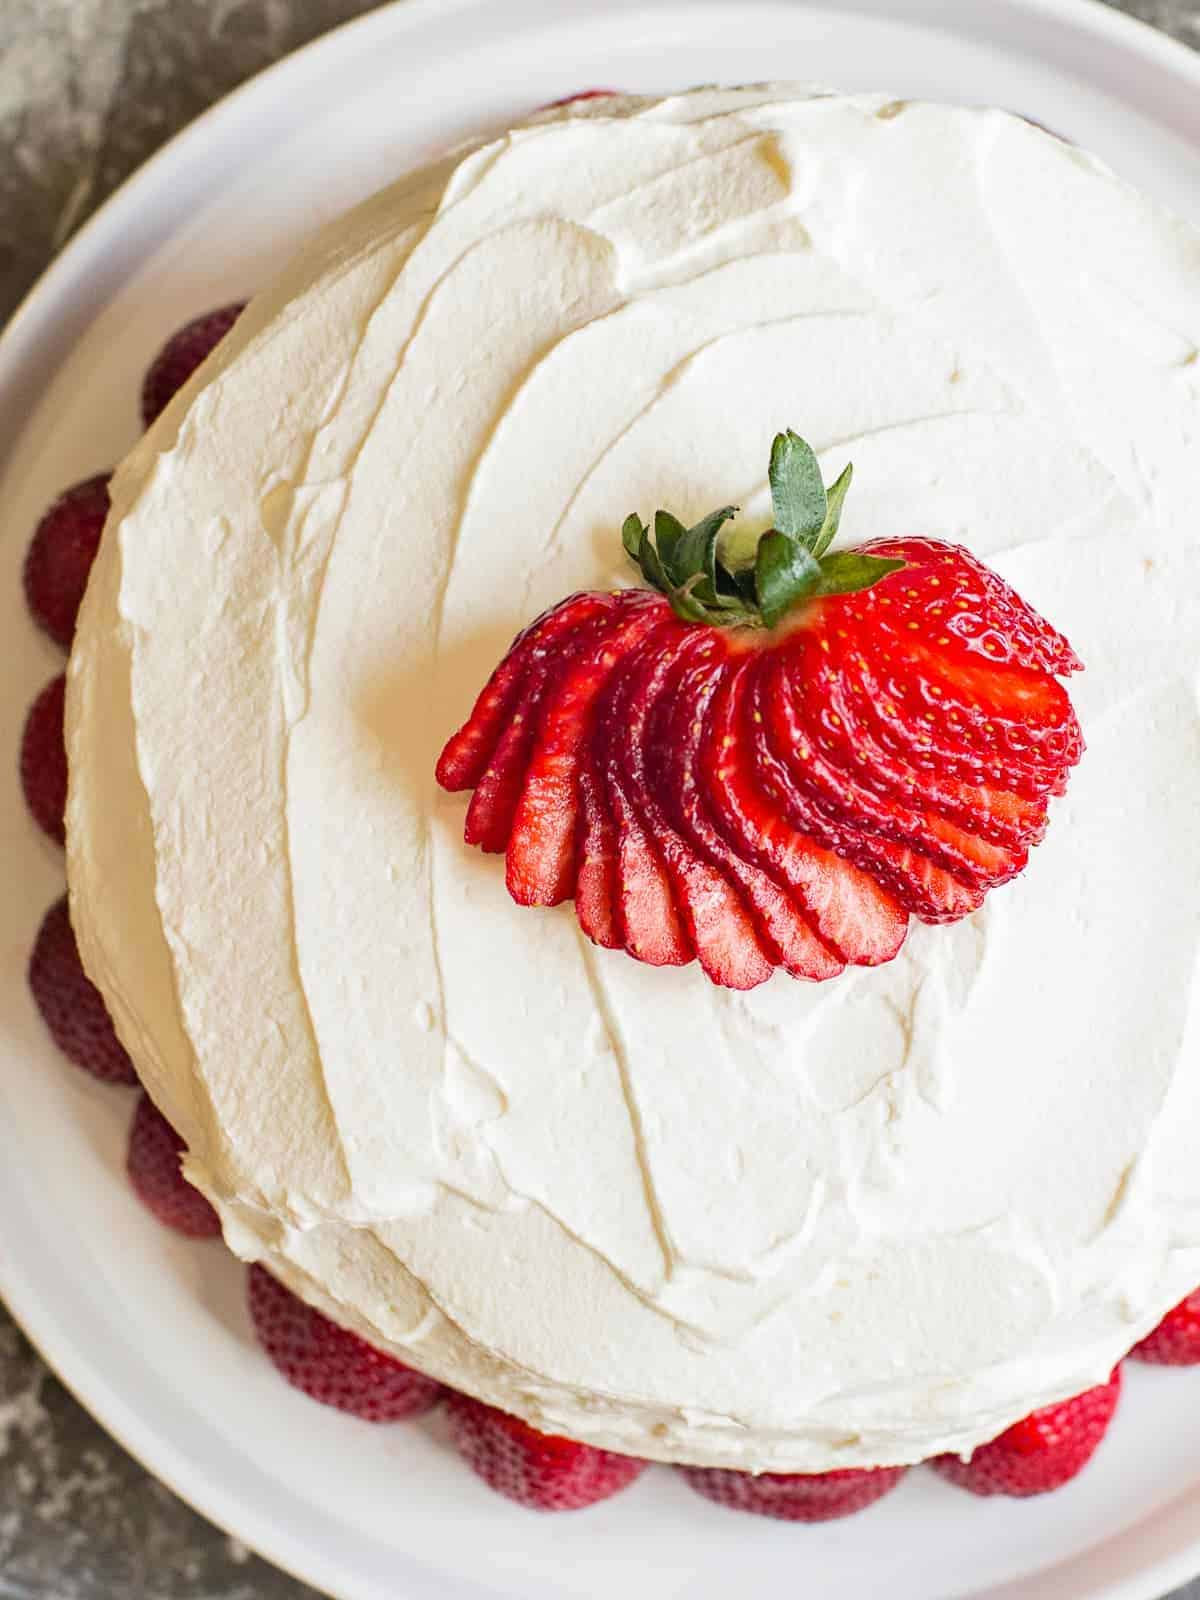 Fresh Strawberries and Cream Cake with whipped cream frosting